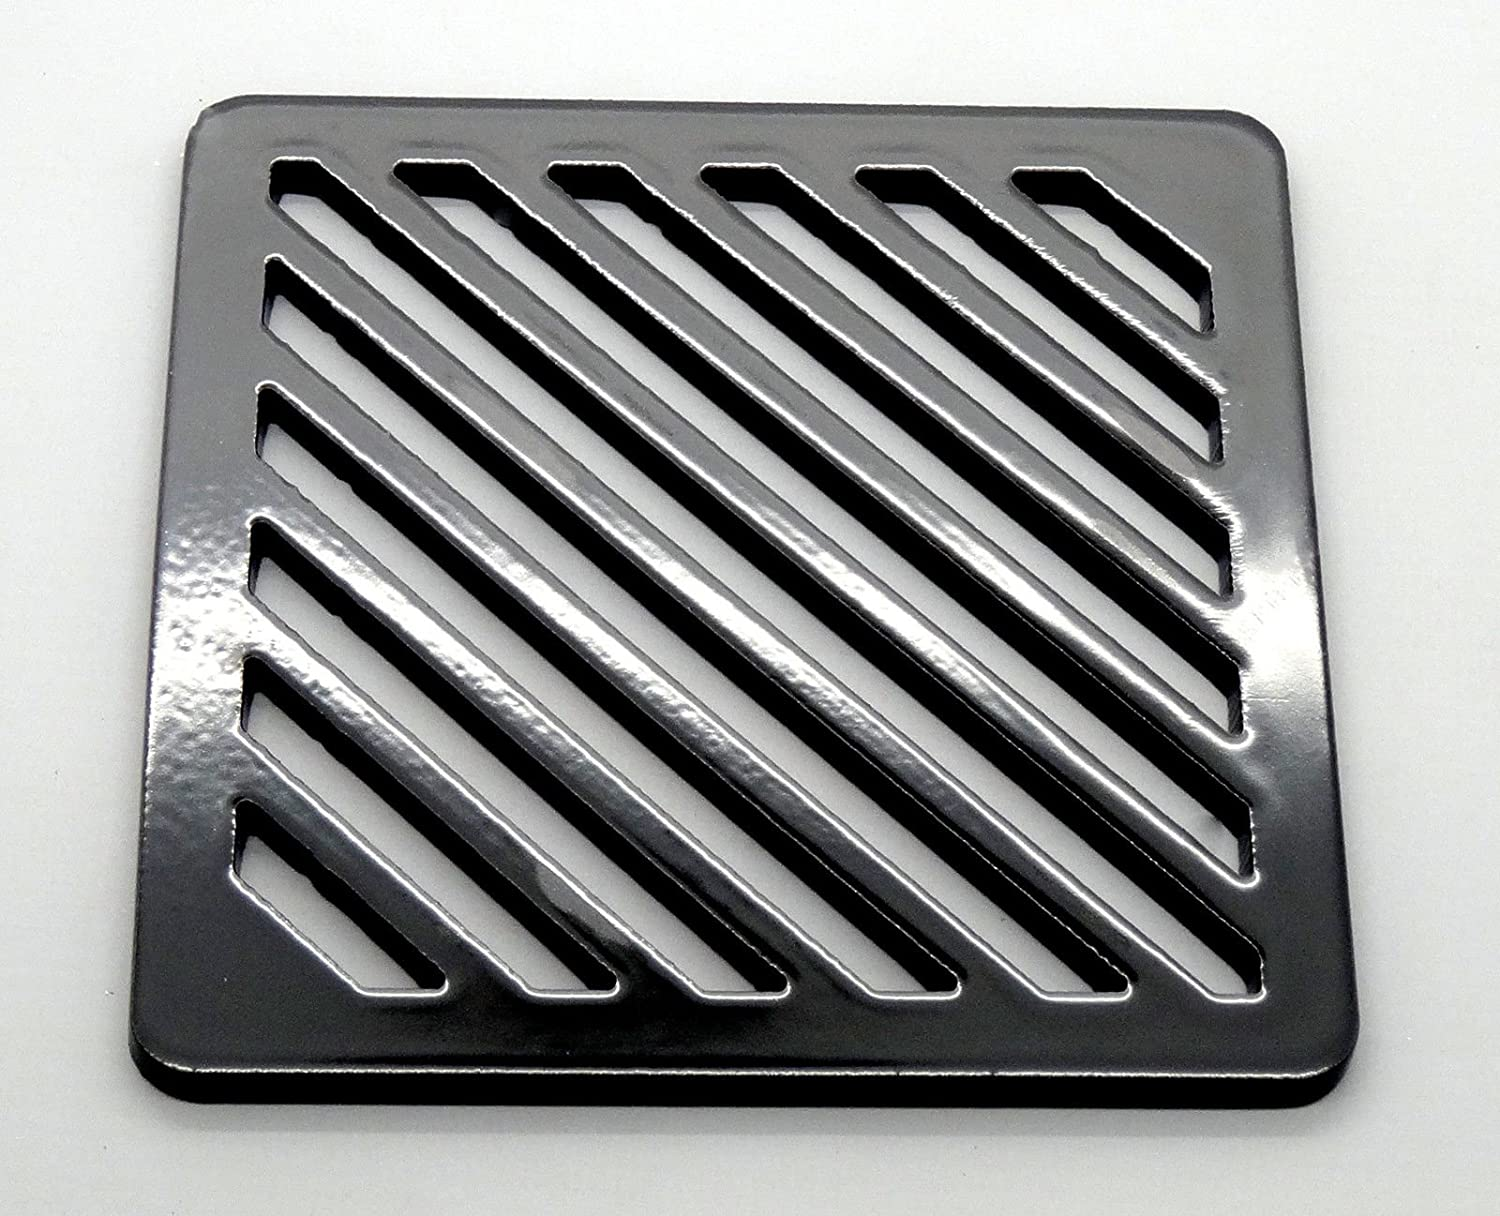 4' inch Square solid metal steel Gully Grid Heavy Duty Drain Cover grate like cast iron, stronger Lakeland Steel Ltd